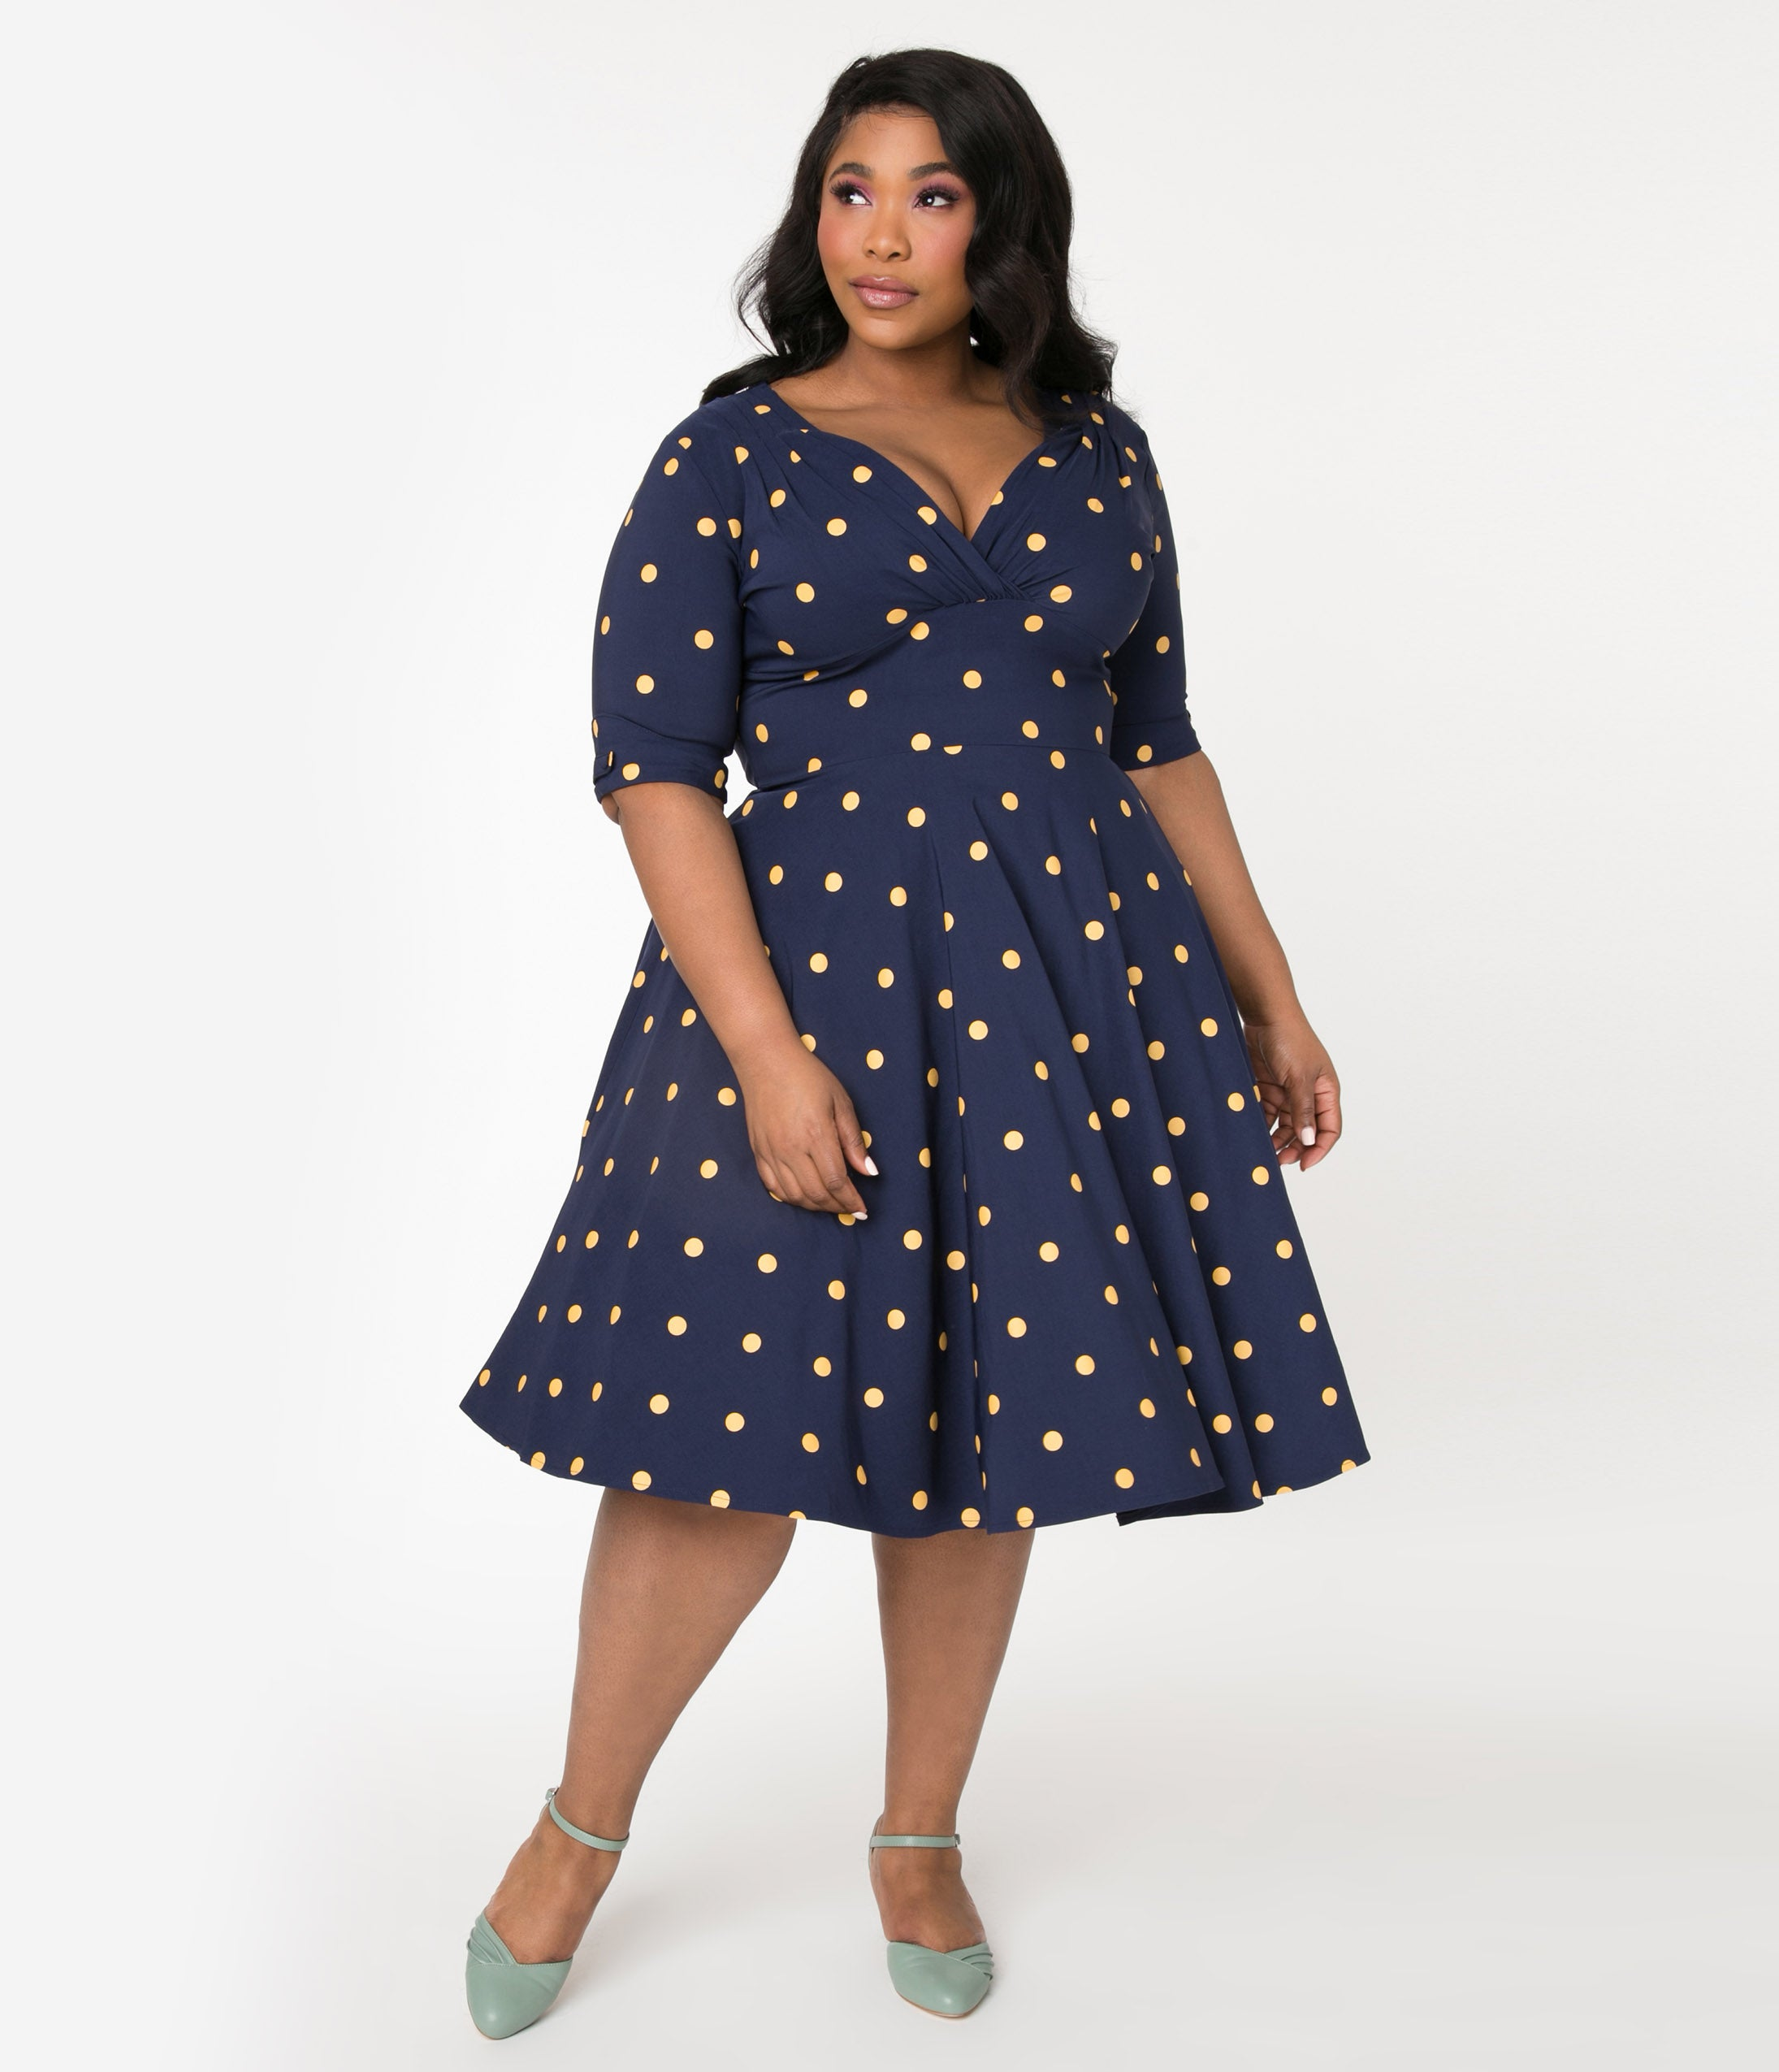 1950s Plus Size Fashion & Clothing History Unique Vintage Plus Size Navy  Mustard Polka Dot Delores Swing Dress With Sleeves $92.00 AT vintagedancer.com